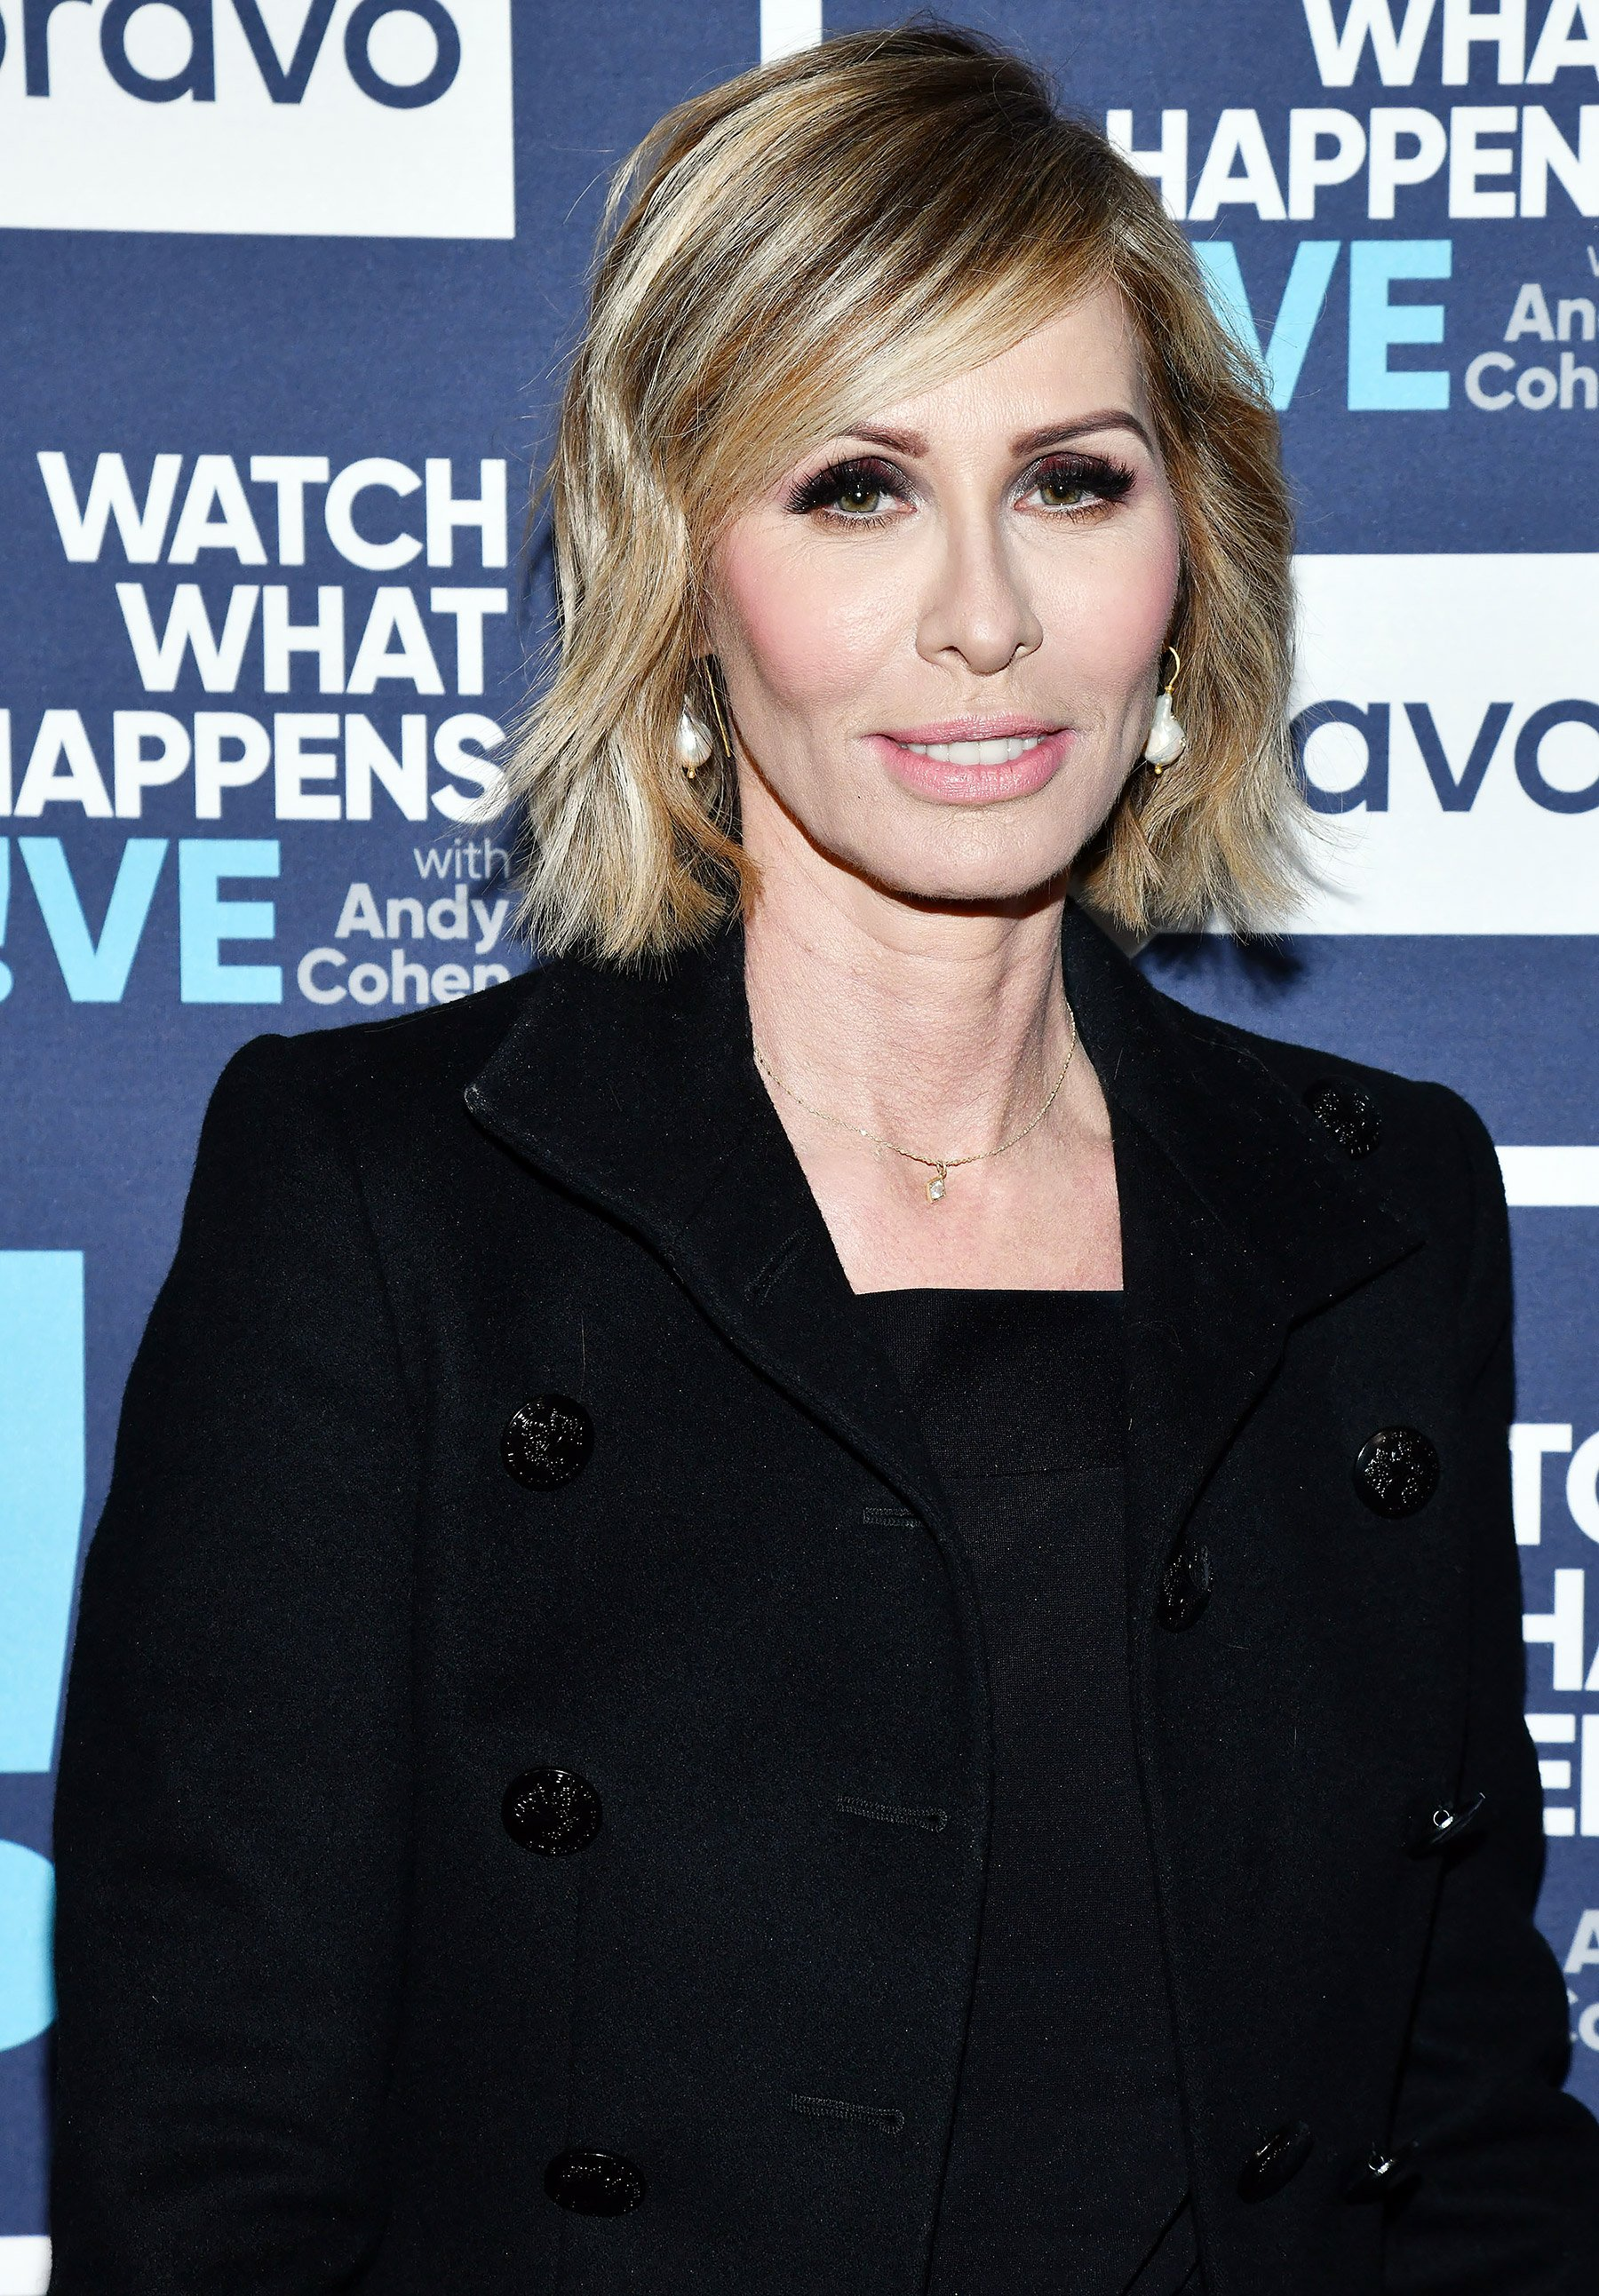 Carole Radziwill Exits Real Housewives of New York: 'I'm Thrilled to Leave Frenemies Behind'